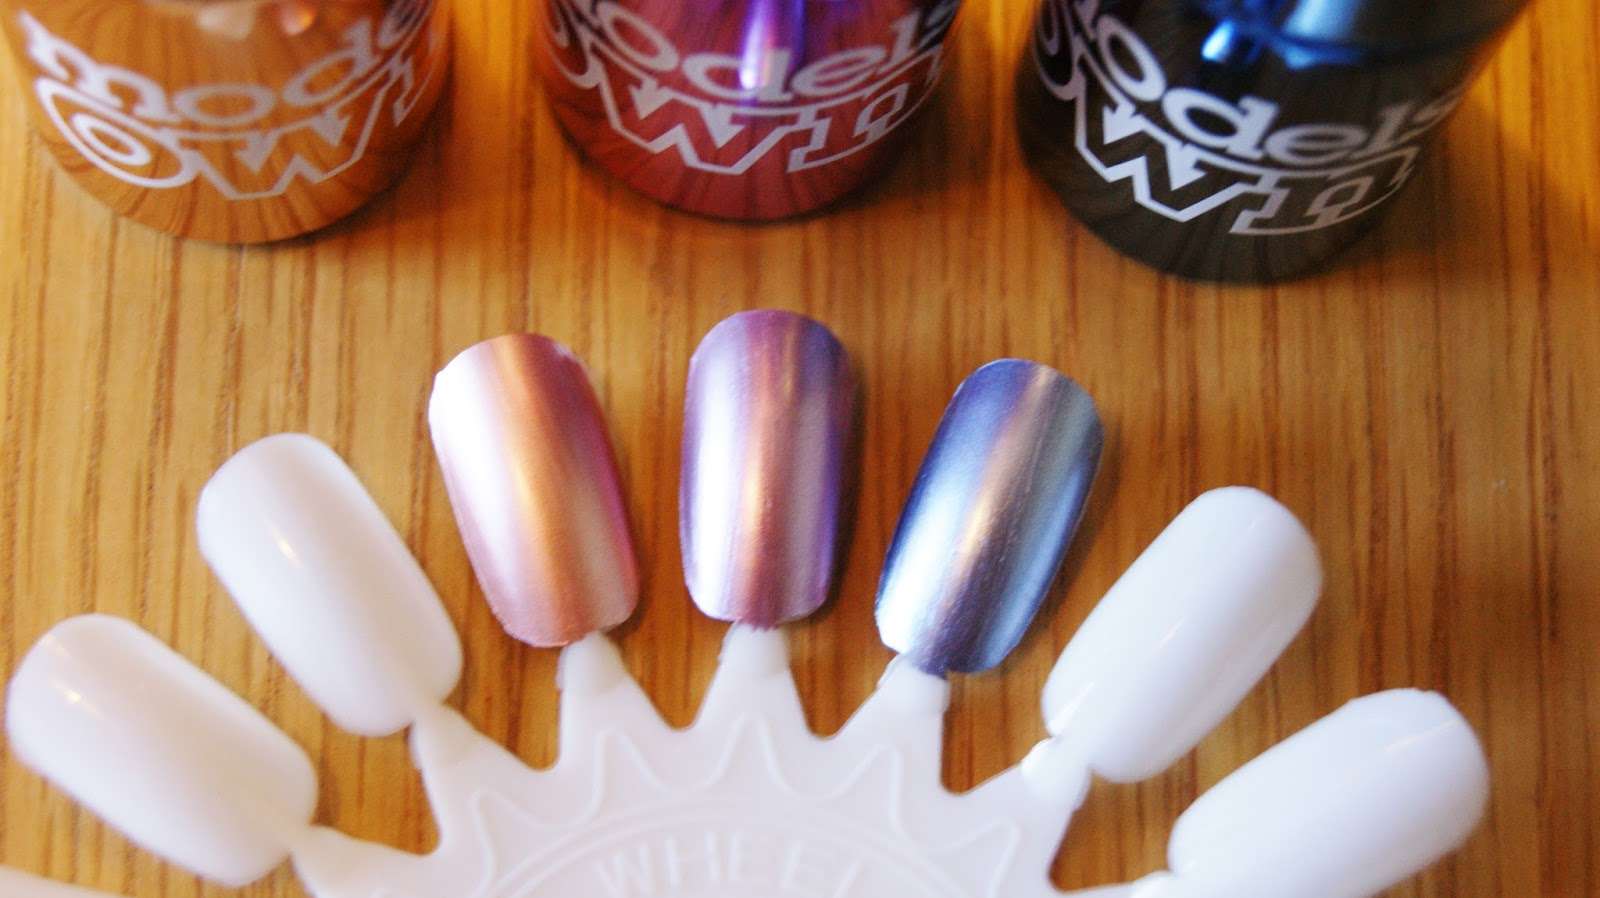 Models Own Chrome Nail Polish Swatches